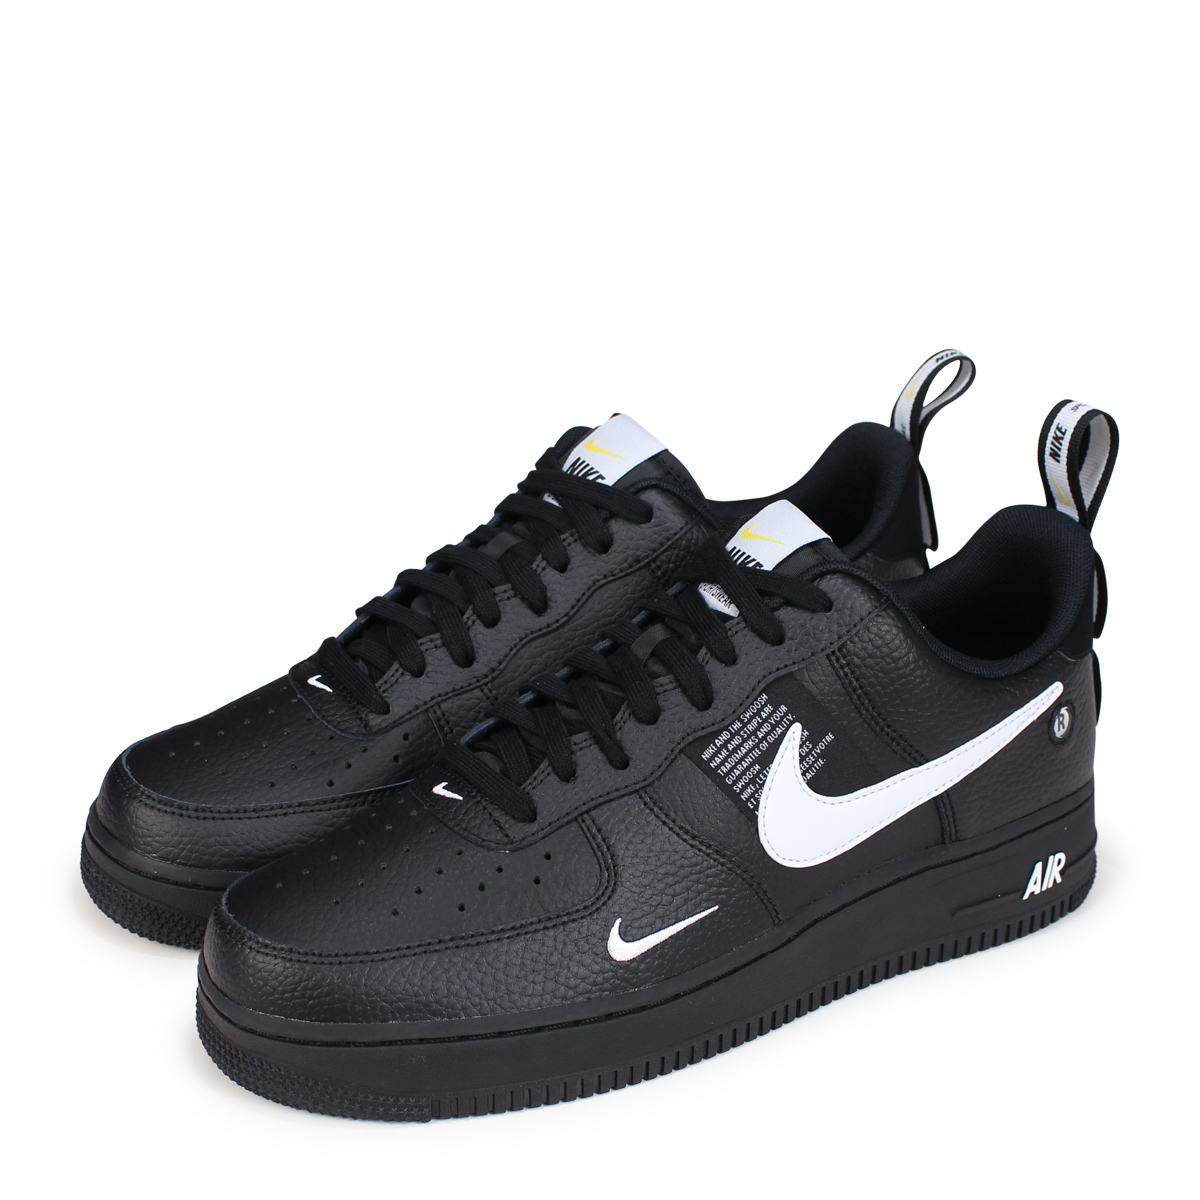 air force 1 lv8 utility nere